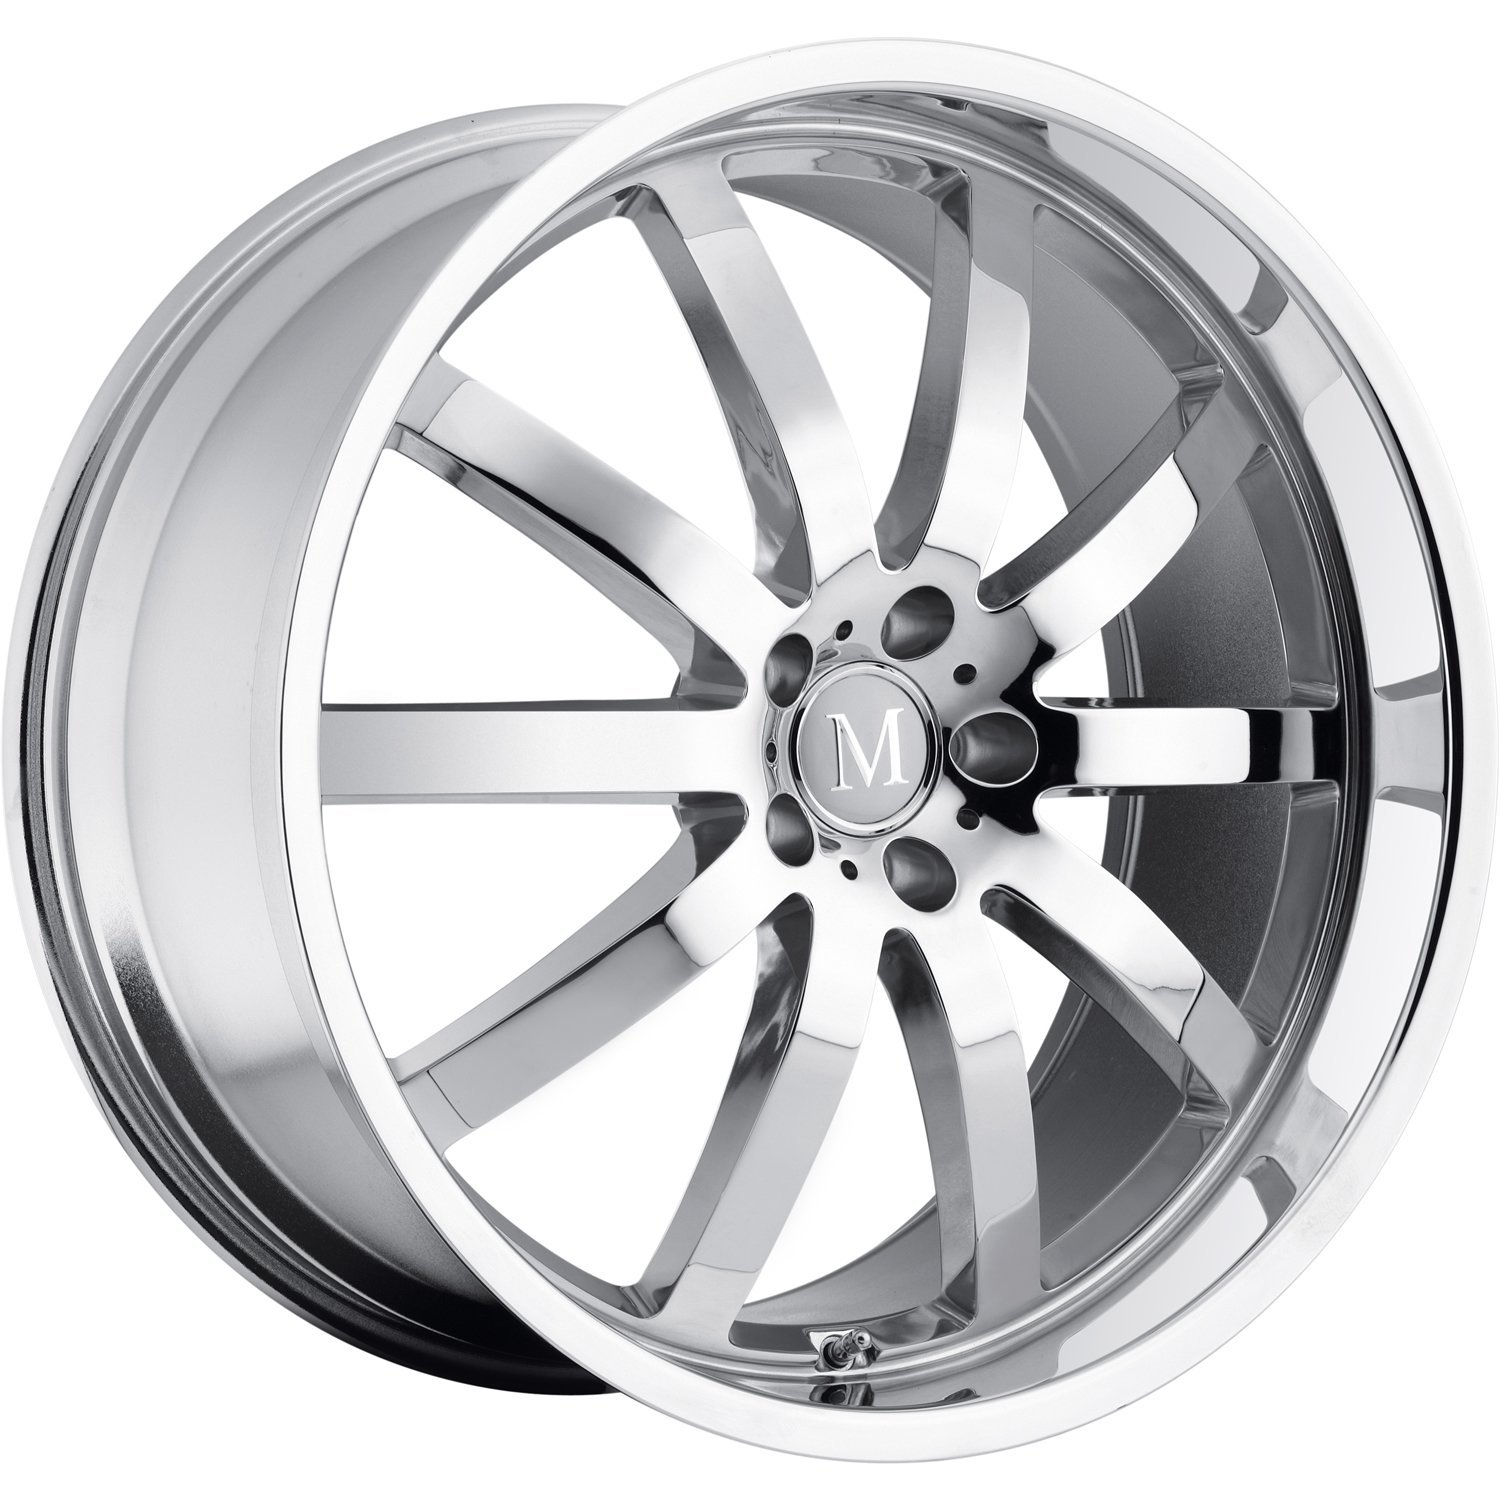 Cheap Cheap 17 Inch Chrome Rims find Cheap 17 Inch Chrome Rims